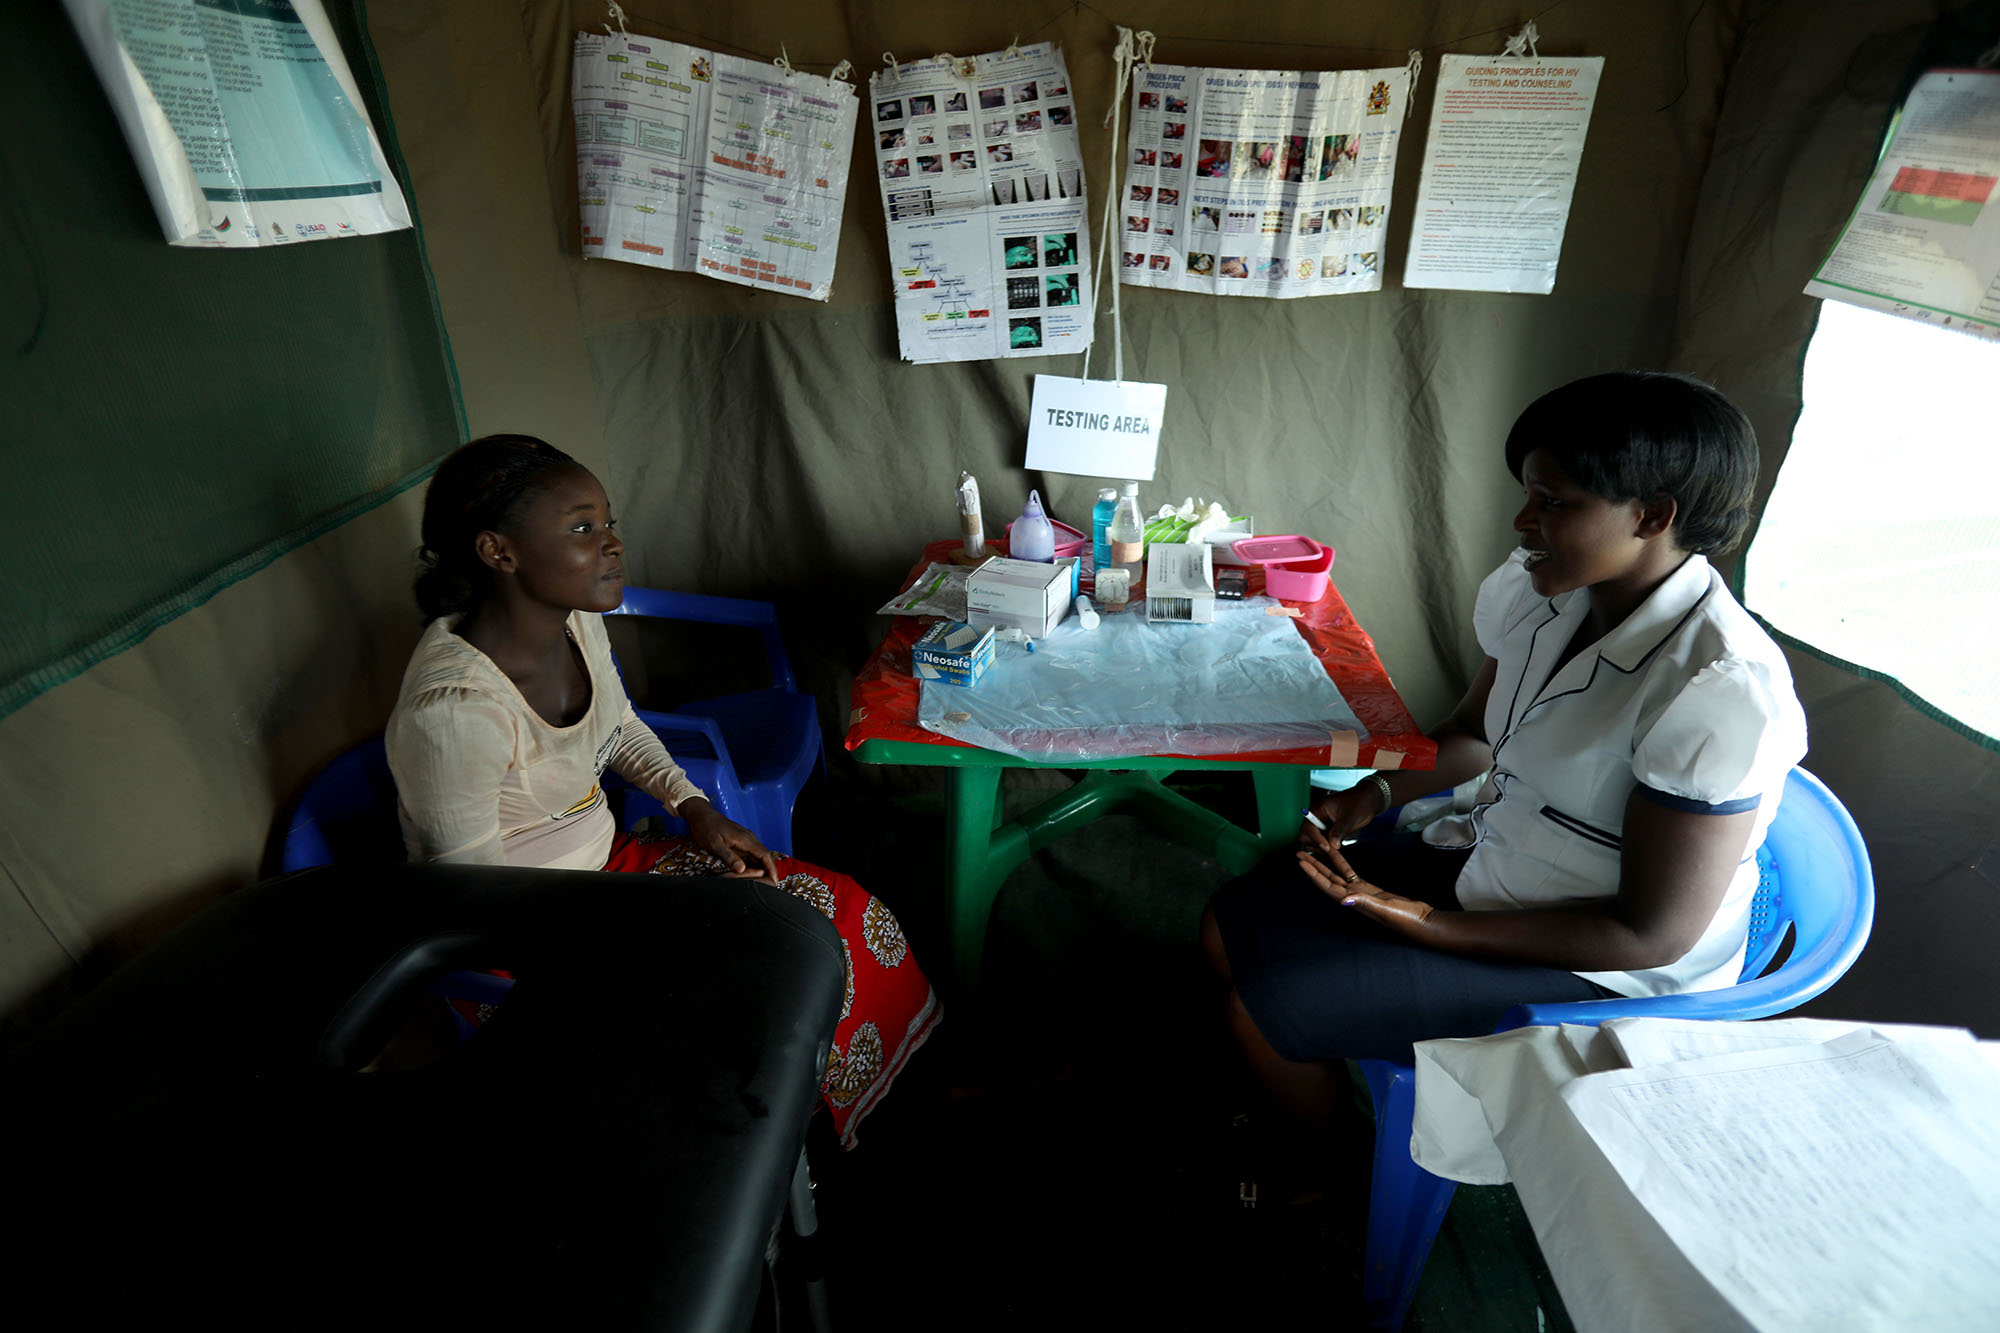 """NSANAMA, MACHINGA DISTRICT, MALAWI: Nov. 15, 2017 - The Determined, Resilient, Empowered, AIDS-free, Mentored and Safe (DREAMS) initiative is an ambitious $385 million partnership to reduce HIV infection among adolescent girls and young women (AGYW) in HIV priority areas within 10 sub-Saharan African countries that account for nearly half of the new HIV infections that occur among AGYW globally in 2014. While the main goal of the DREAMS initiative is to keep AGYW AIDS-free, the benefits of core package go well beyond the disease. DREAMS upon the USAID decades of experience empowering young women and advancing gender equality across sectors of global health, education, and economic growth, USAID partners with community, faith-based, and non-governmental organizations whose credibility within communities and capacity to mobilize significant numbers of volunteers allow USAID to address the structural inequalities impacting girls vulnerability across multiple areas. Maggie Medison, 18, who lives in Malawi, dropped out of school in 2015 because she became pregnant. In 2015, Maggie was recruited into One Community's Go Girls! Club. She later applied to be a Community Resource Person (CRP) to supervise the club. She has now become an active peer educator, a choice that has changed the course of her life. Maggie works with girls in her community to raise awareness about the importance of remaining in school and protecting ones self against HIV.""""After I fell pregnant and had my baby I thought that was the end of me. I didn't think I could do anything else in my life. But after joining the DREAMS program, I went back to school. And now I know that I can achieve whatever I want in my life."""" Maggie has both a bright outlook on her future and a realistic approach to life. She says, """"I want to be a role model for my daughter to follow."""" Photo by Josh Estey."""